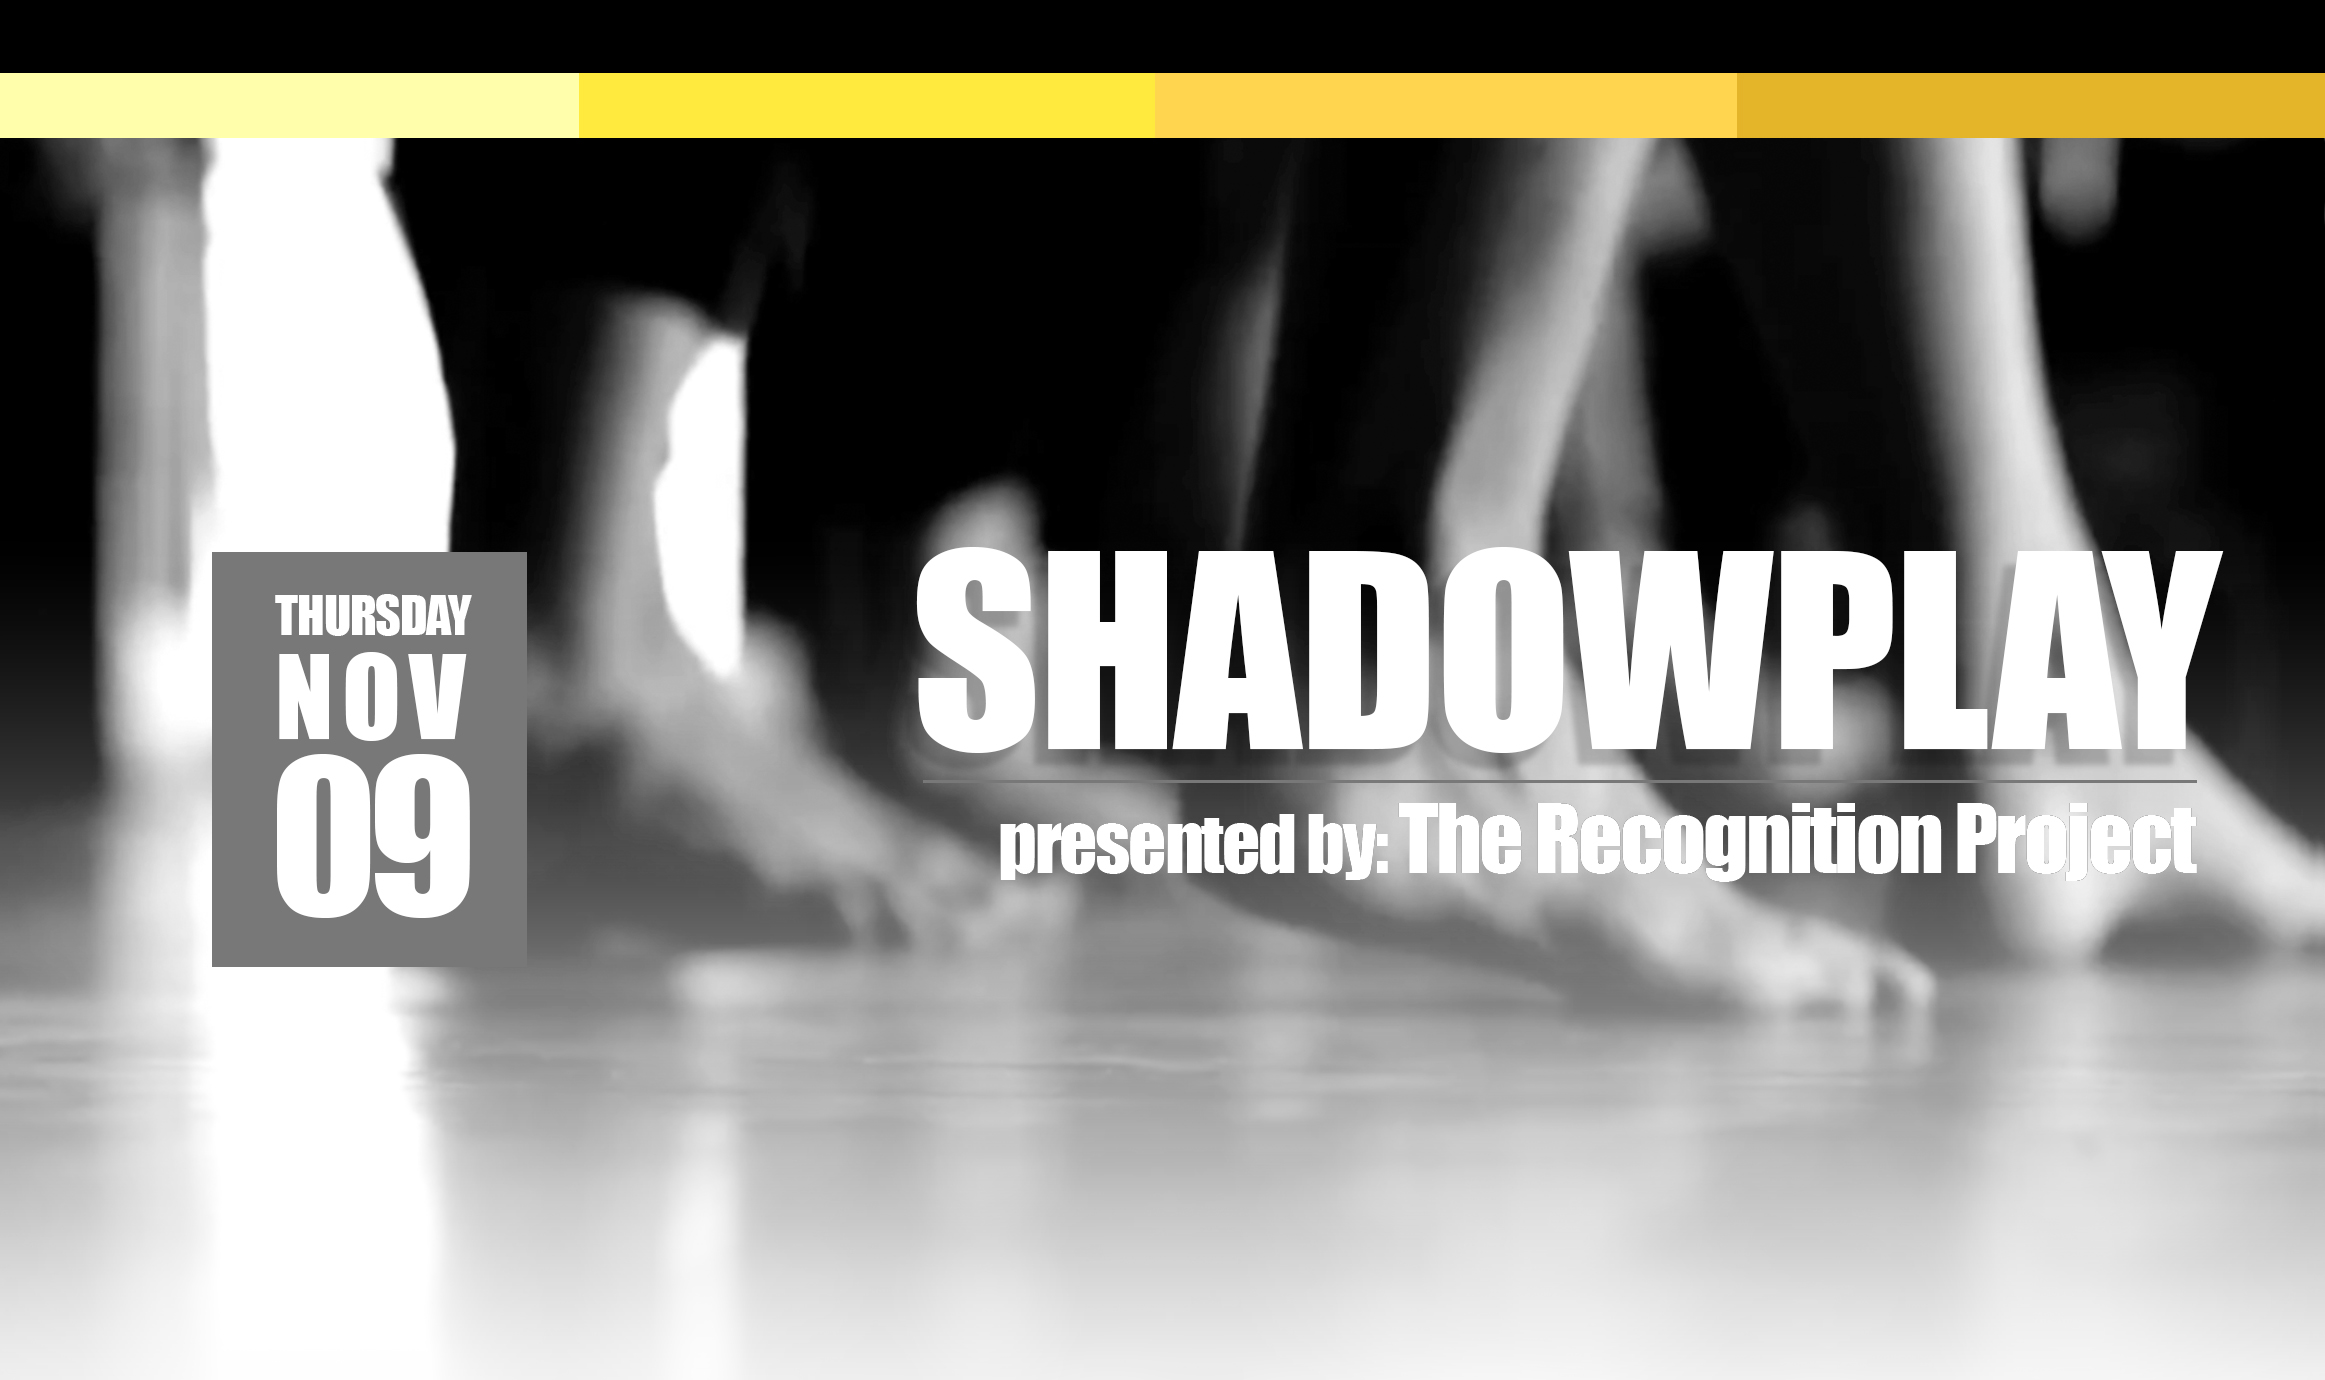 Shadowplay. Presented by The Recognition Project. Thursday, November 9. (Photo of dancers' feet)